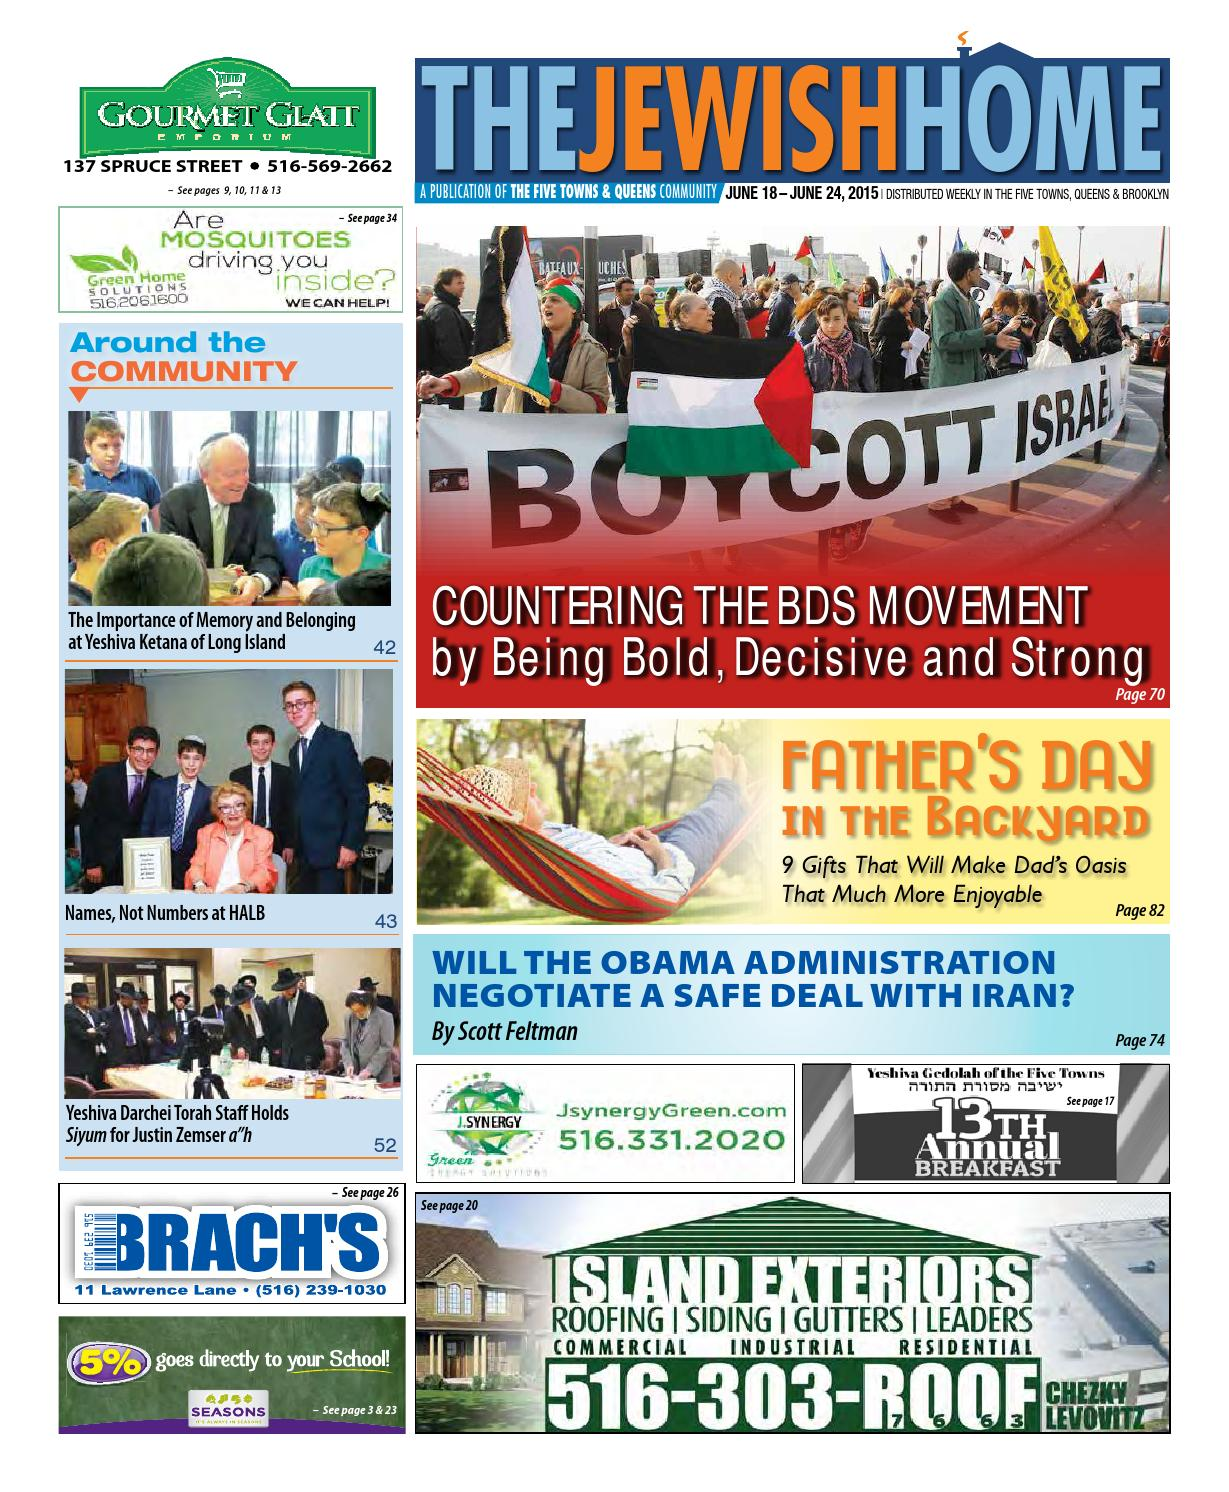 Five Towns Jewish Home - 6-18-15 by Yitzy Halpern - issuu